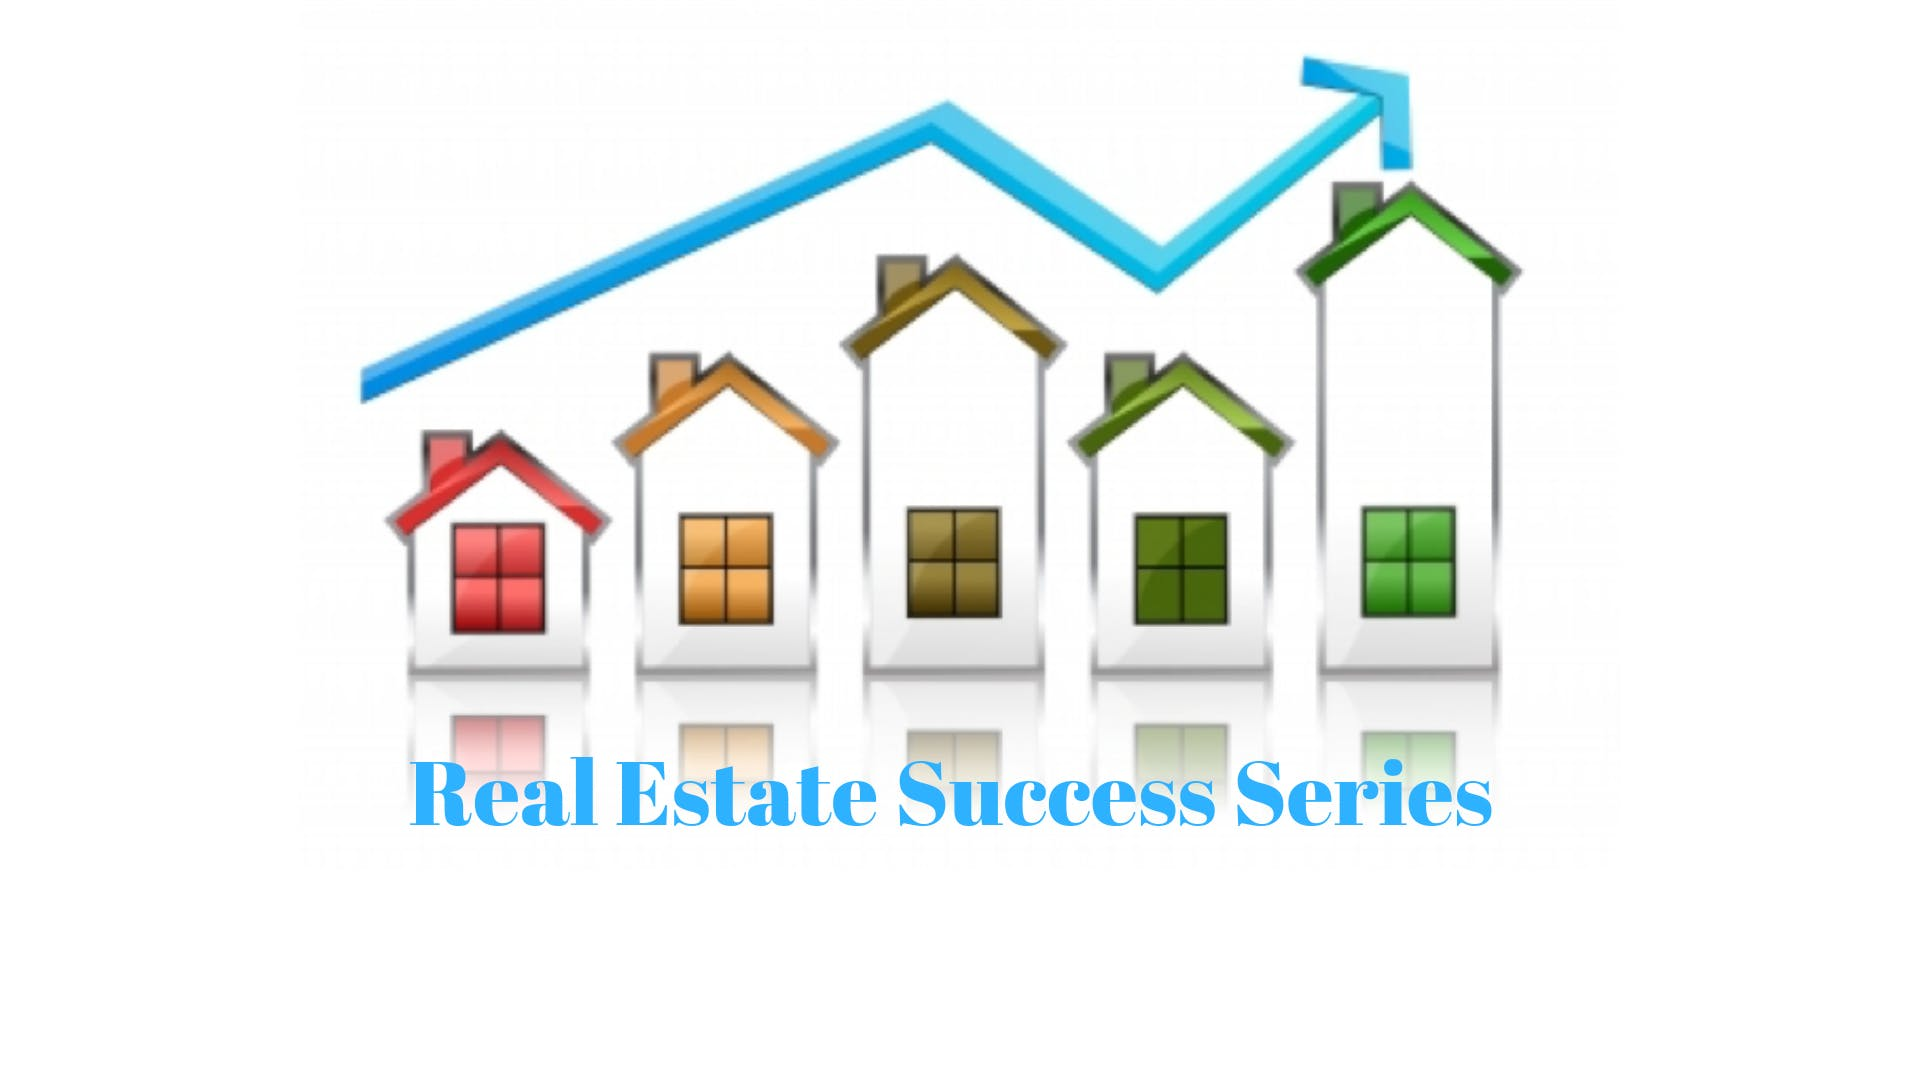 Real Estate Success Series - Neighborhood Canvasing Techniques